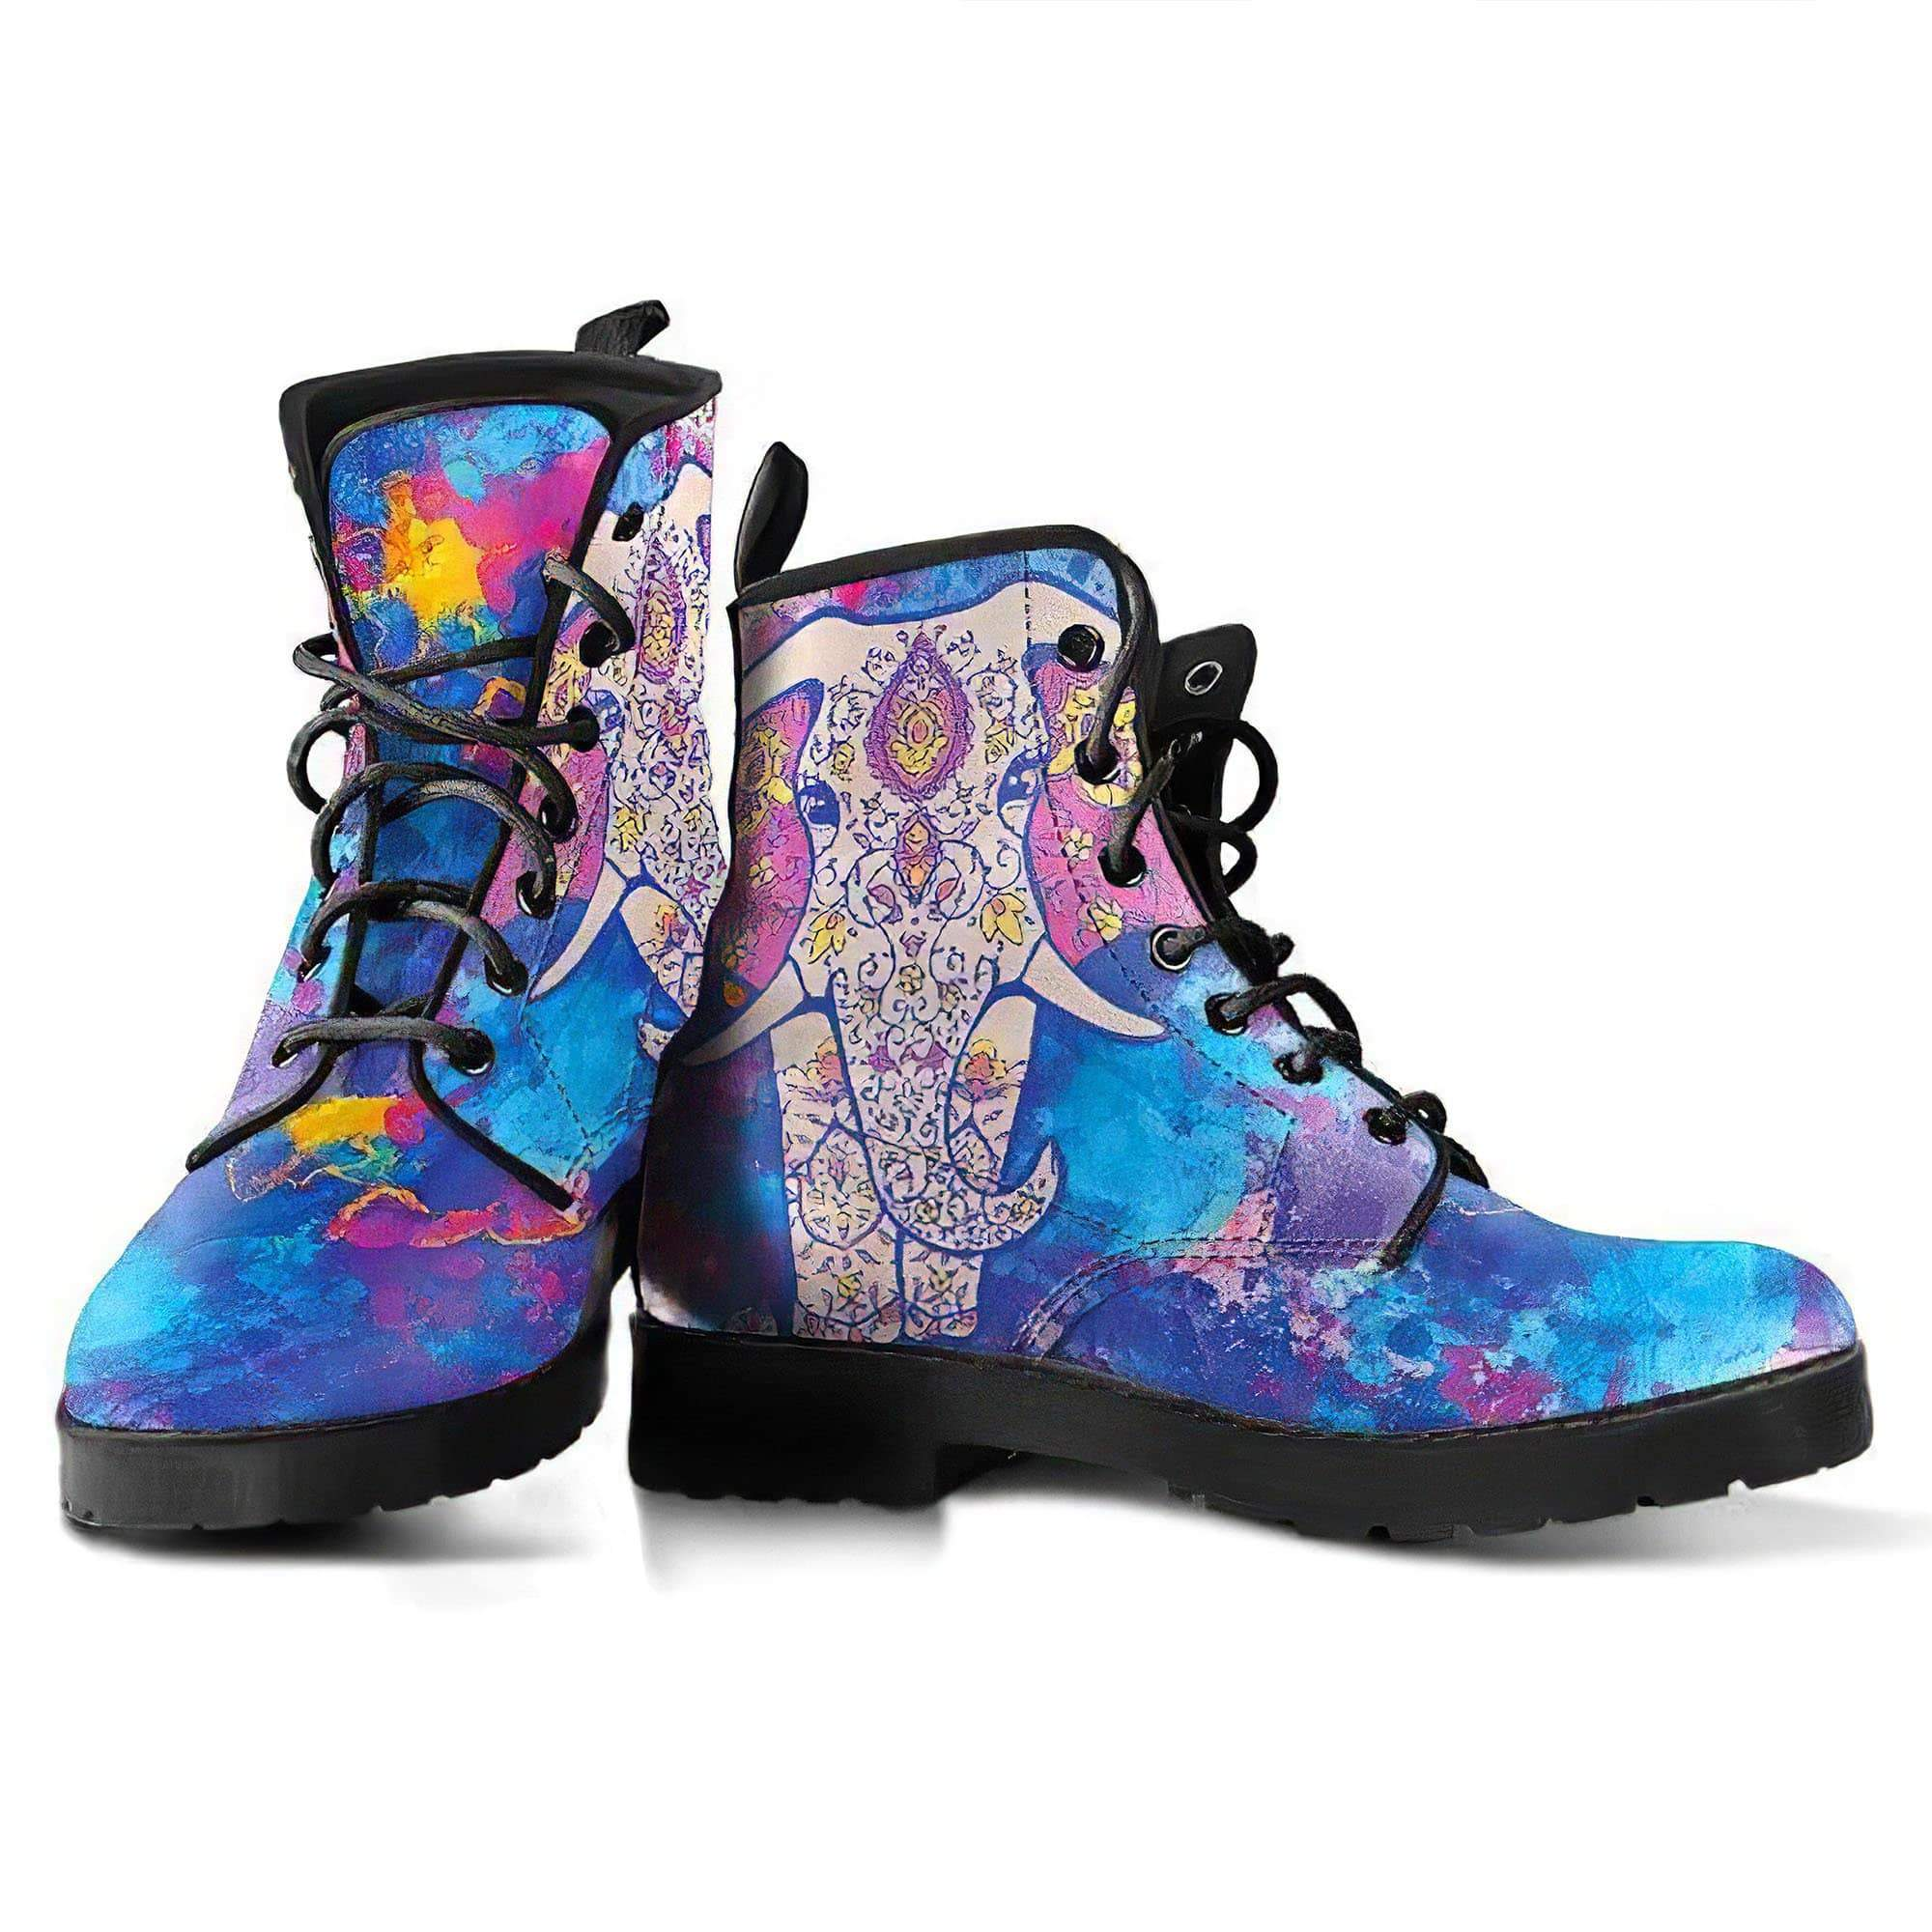 Watercolor Elephant Handcrafted Boots Women's Leather Boots